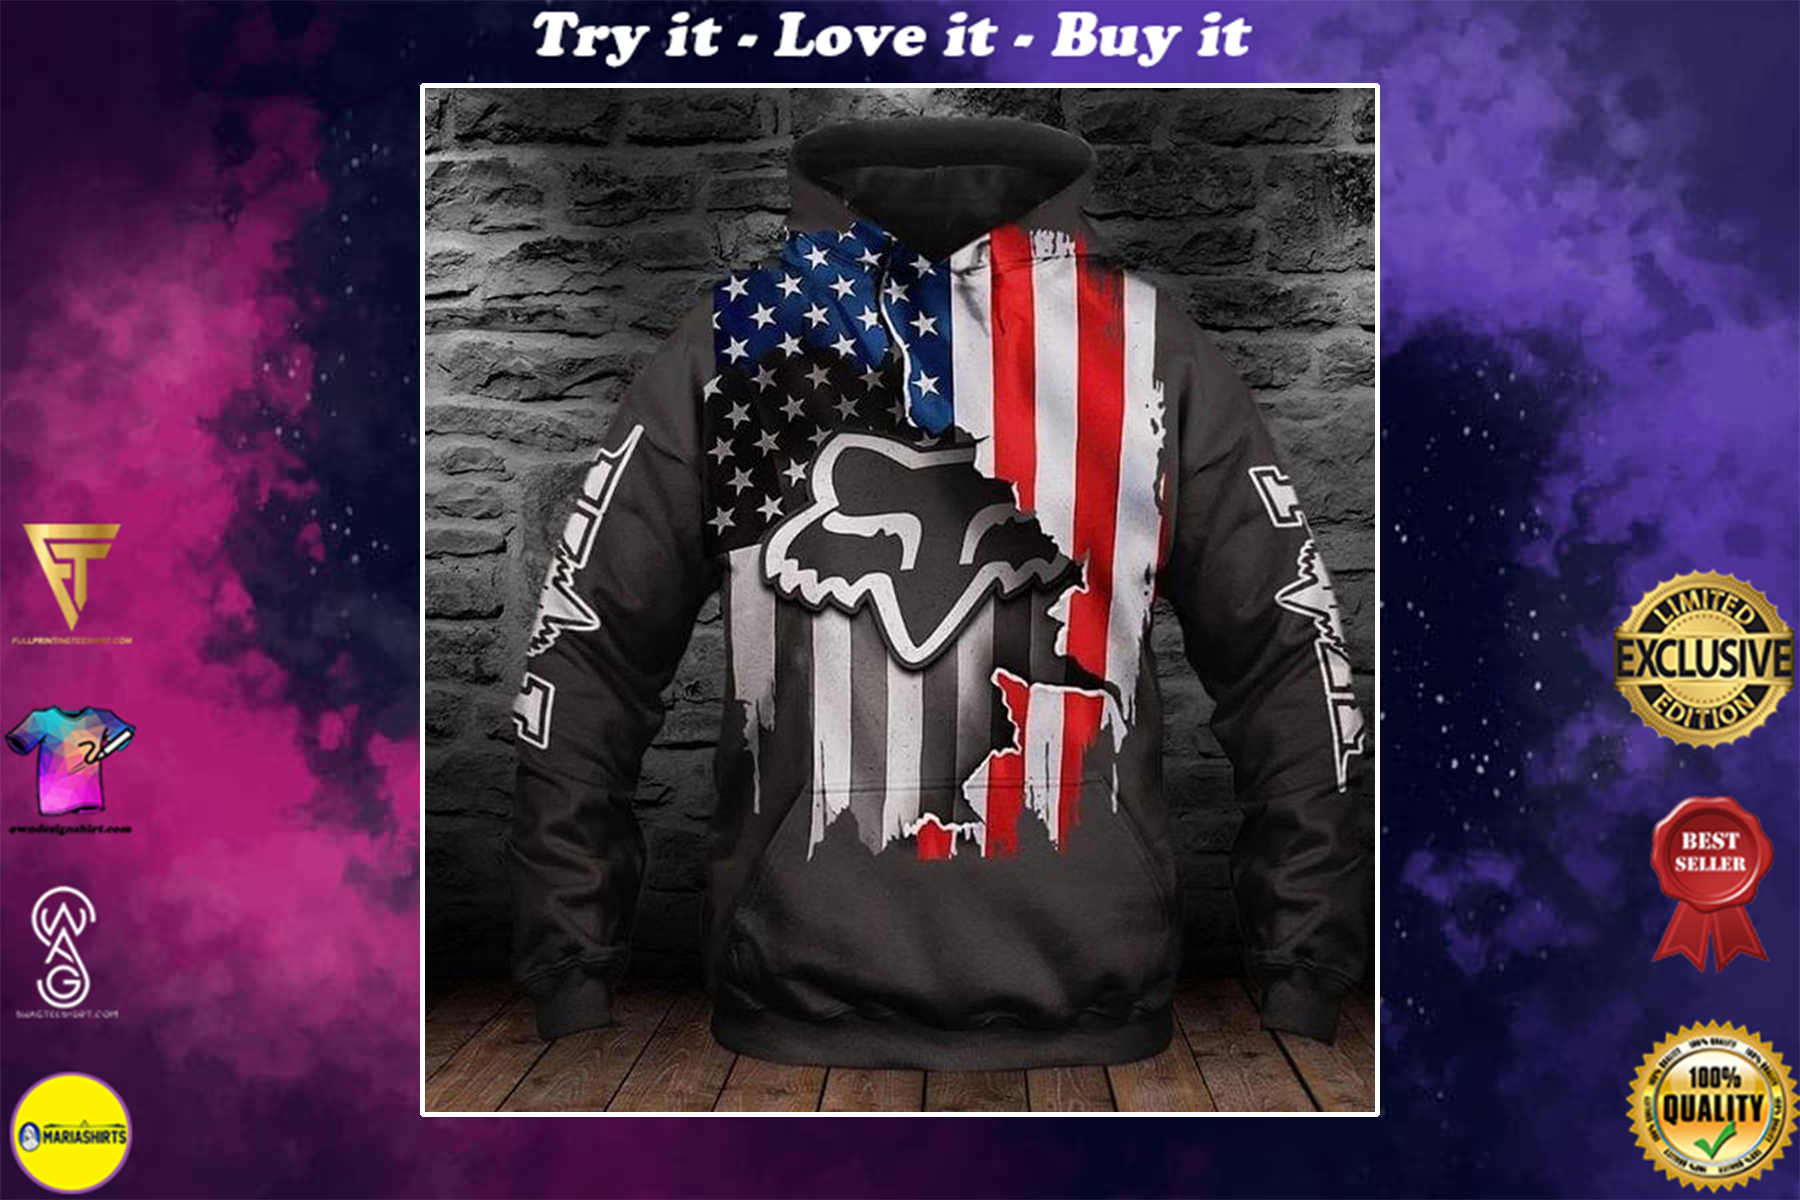 [special edition] fox racing and american flag layer full over printed shirt - maria